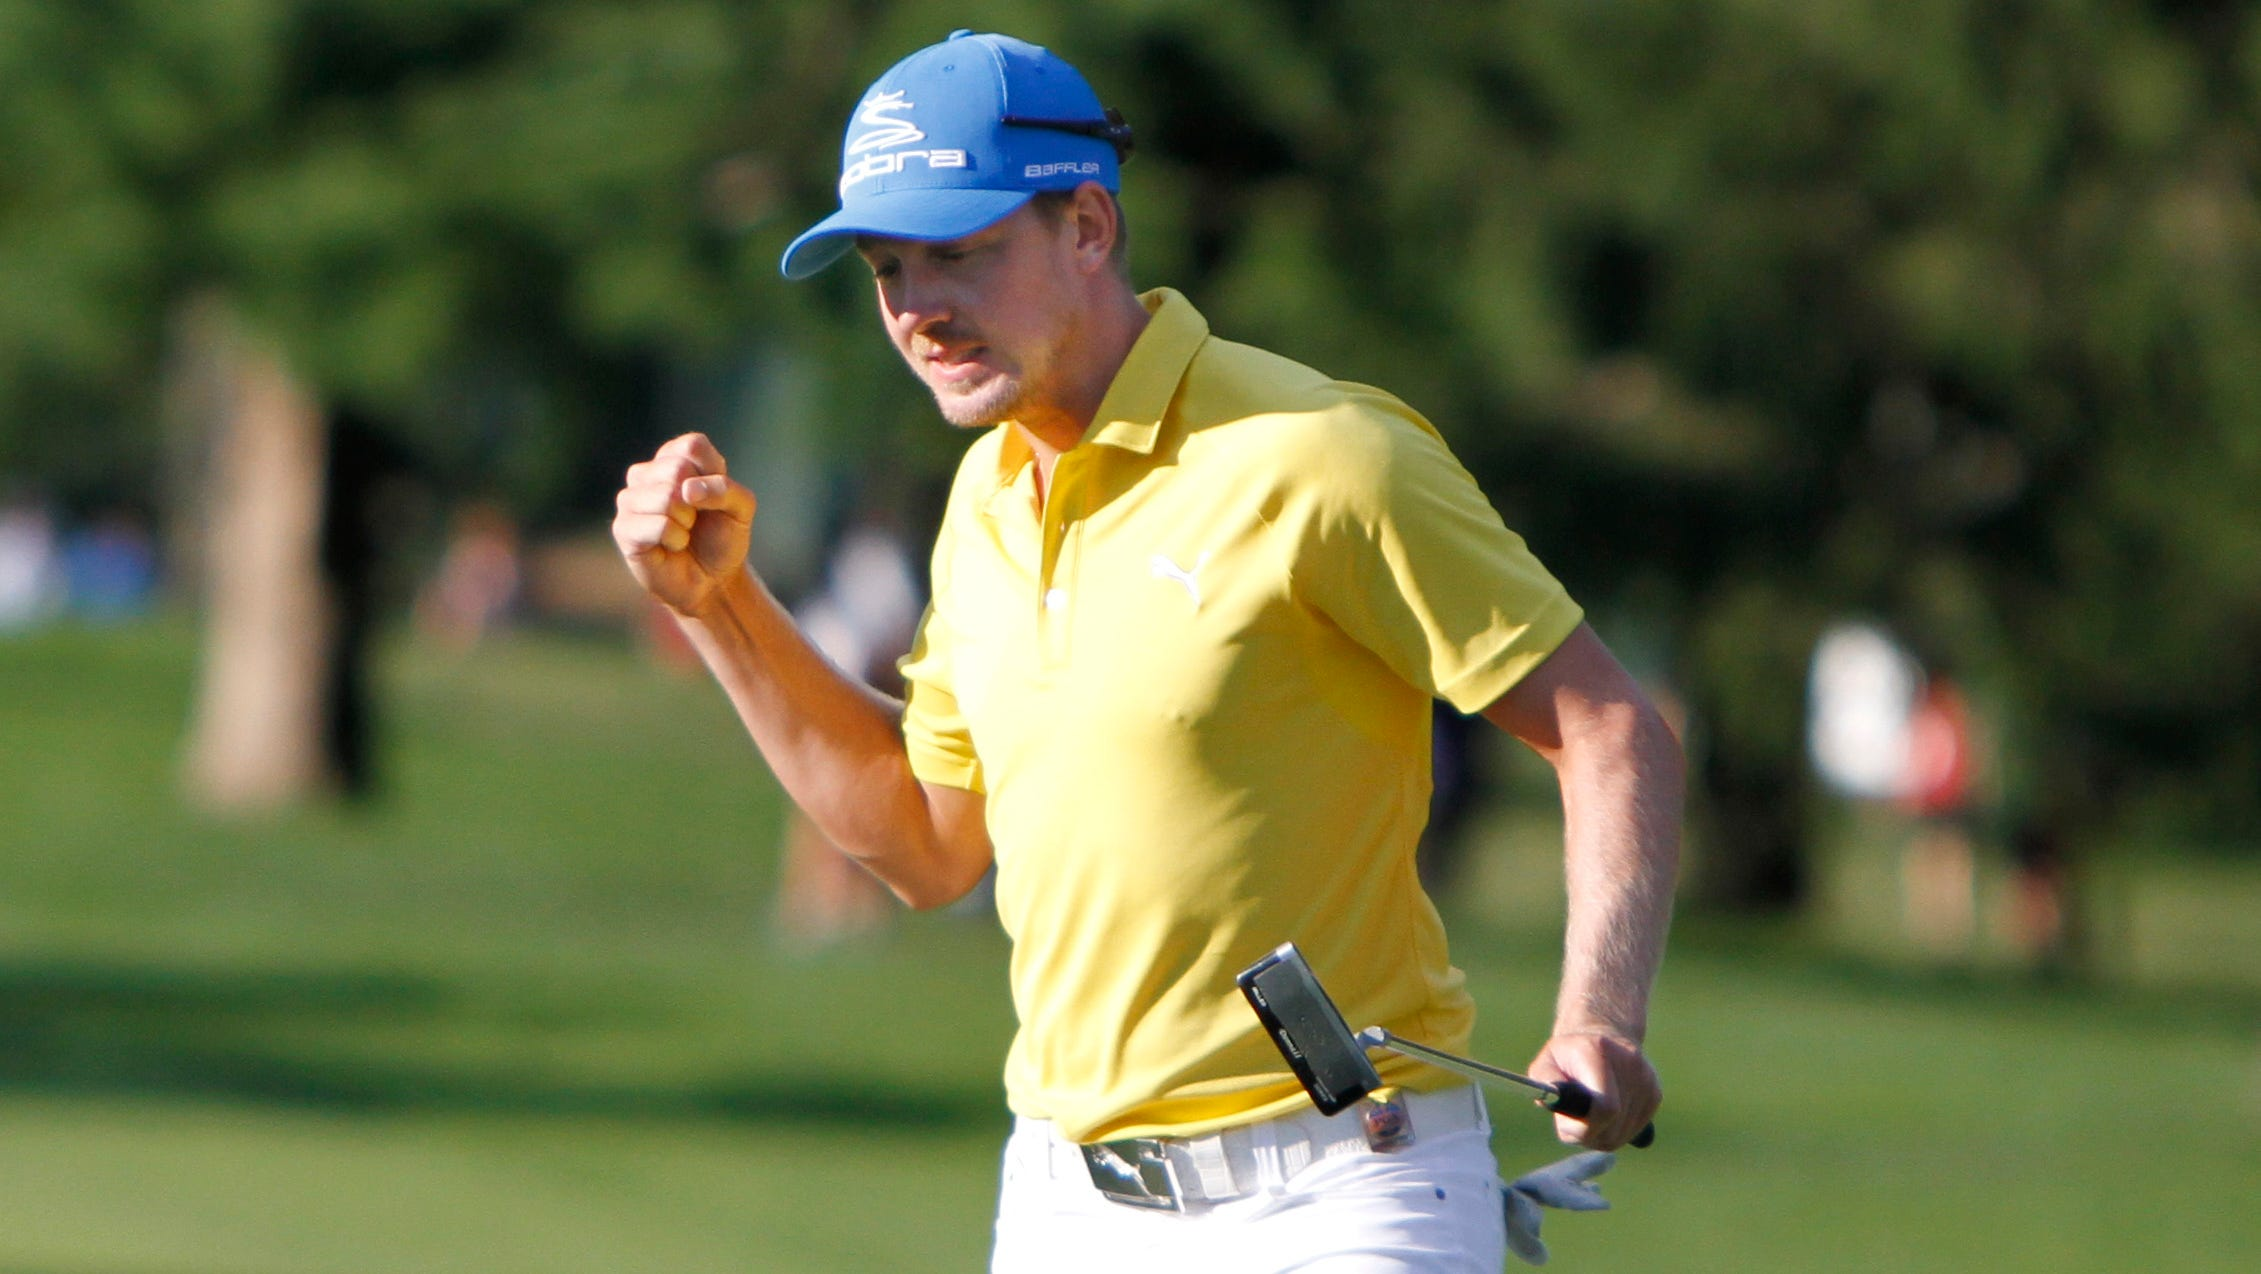 Jonas Blixt pumps his fist after sinking a long birdie putt on the 16th during the final round of the 95th PGA Championship Sunday, Aug. 11, 2013 at Oak Hill Country Club in Pittsford.